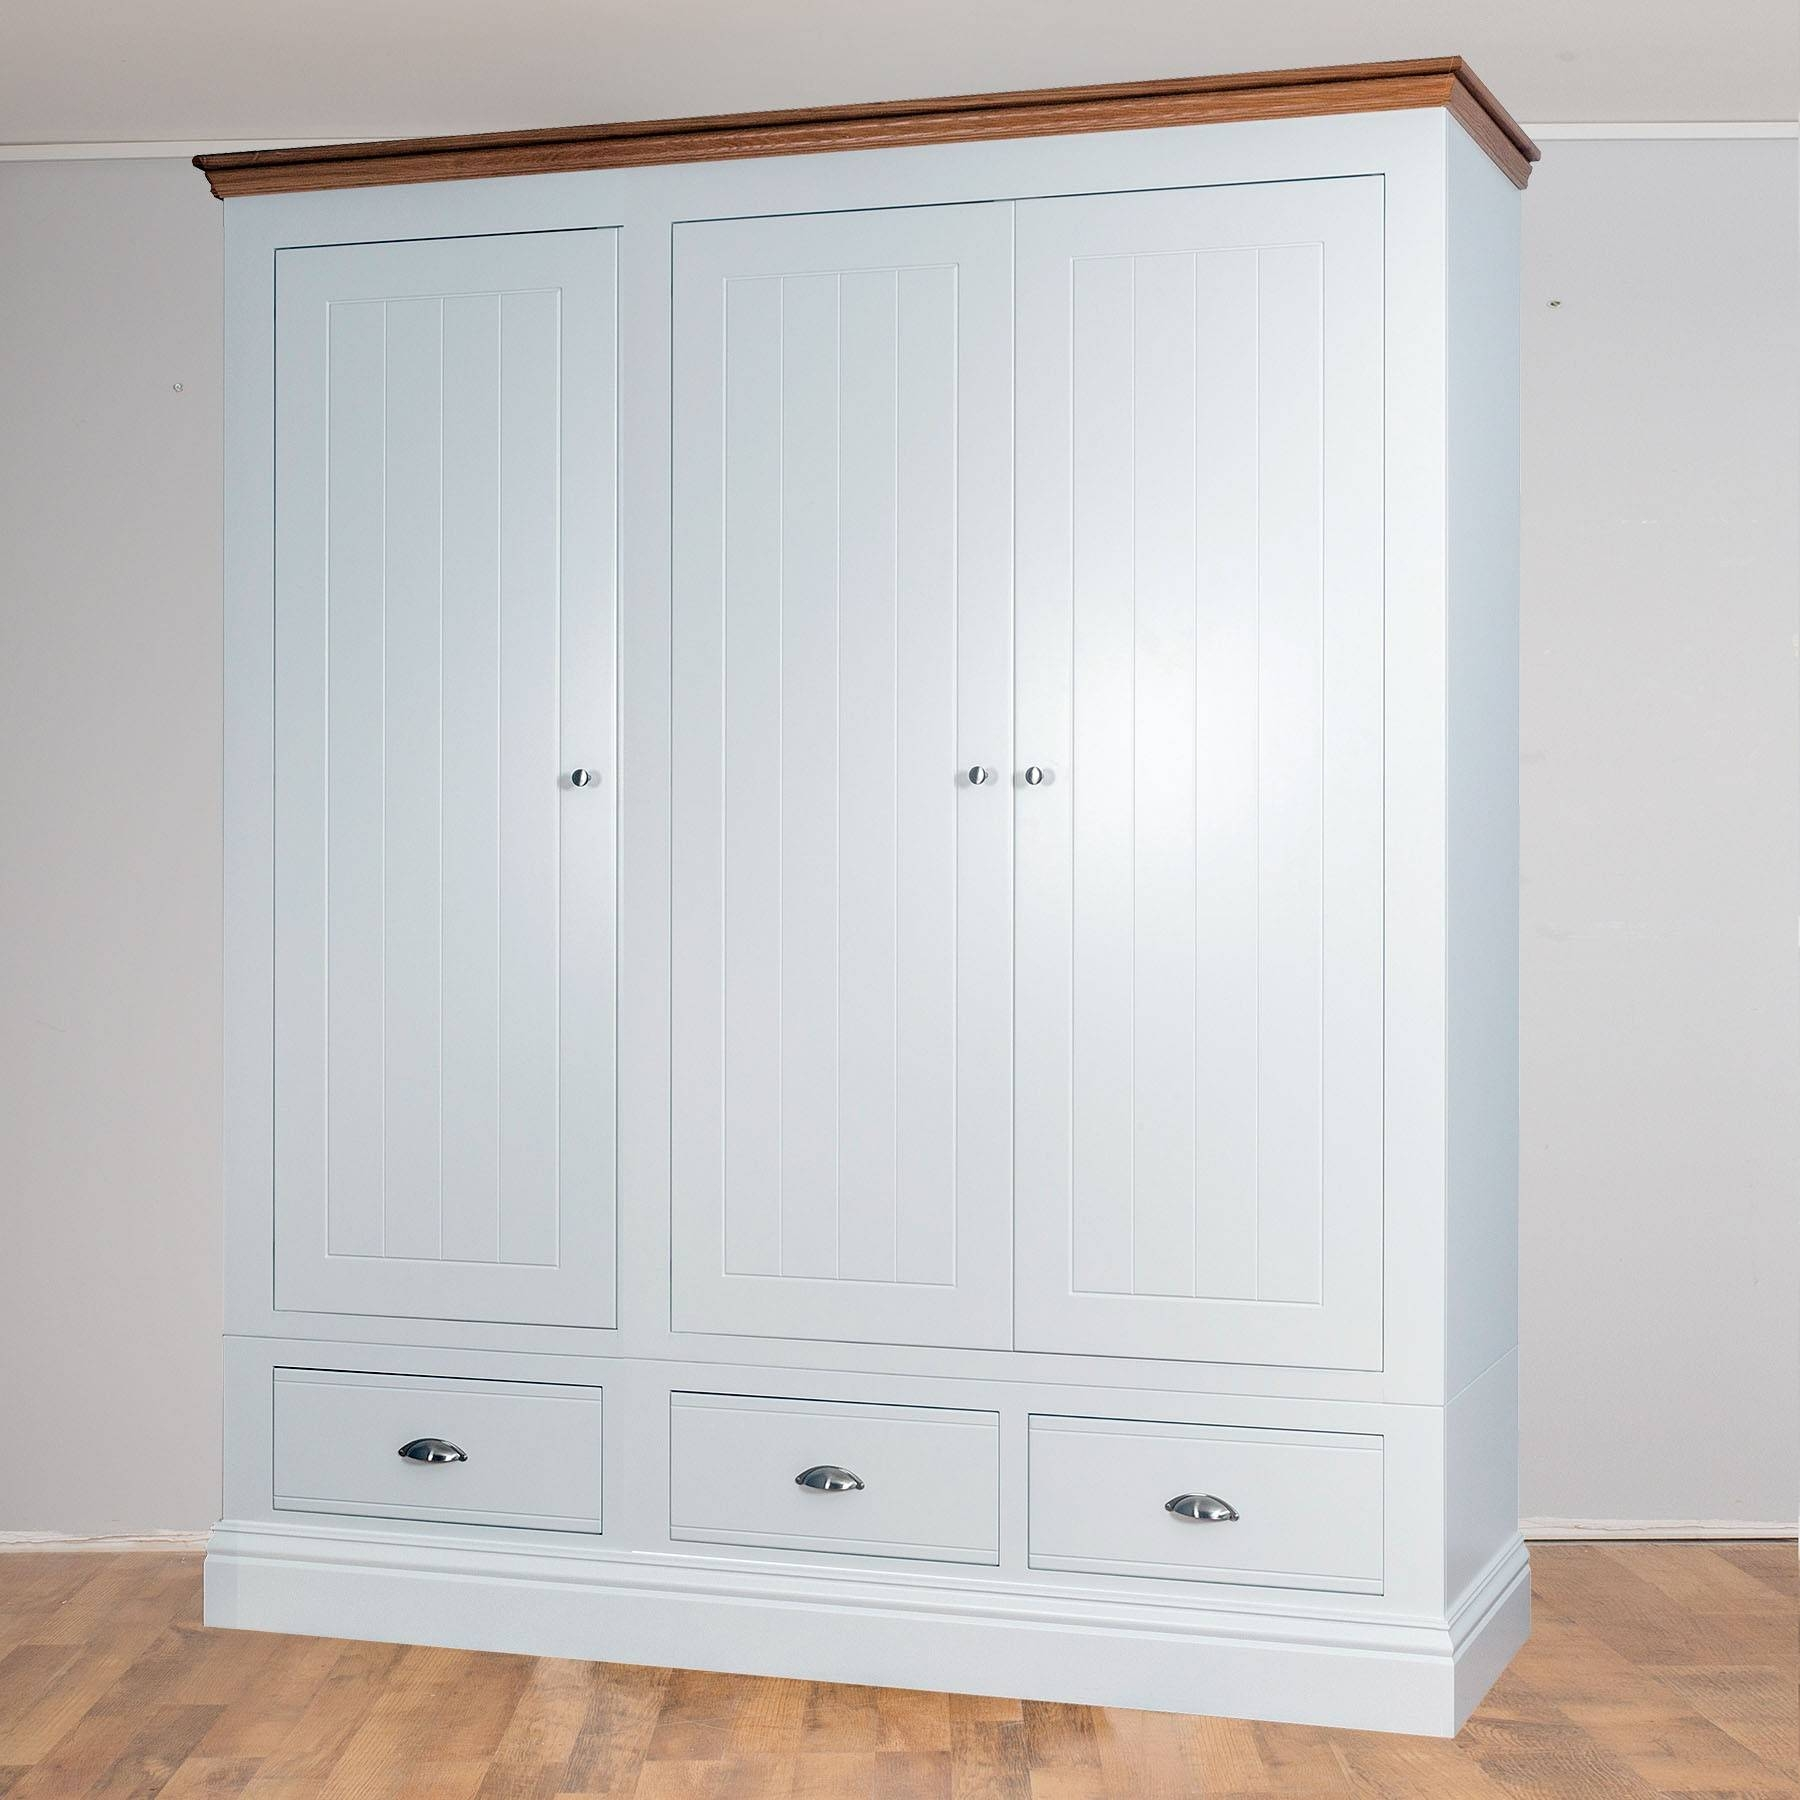 New England Painted 3 Door 3 Drawer Wardrobe In 2 Heights In 3 Door White Wardrobes With Drawers (View 7 of 15)